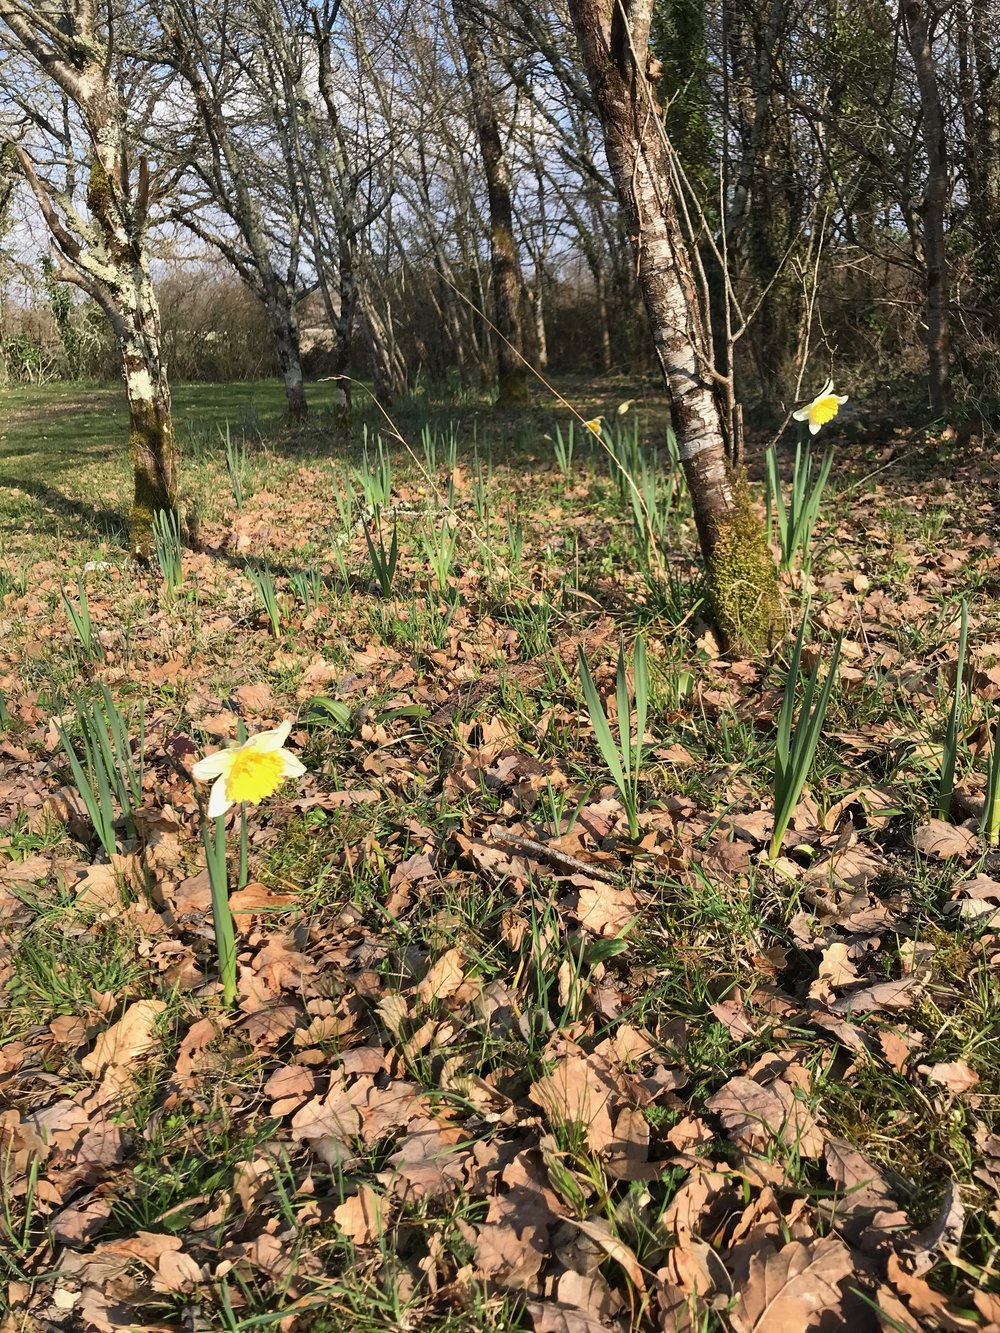 The daffodils planted in the autumn were the right way up! They are starting to open now though we do seem to have some without a flower. A bit of feed perhaps and hope for more flowers next year.